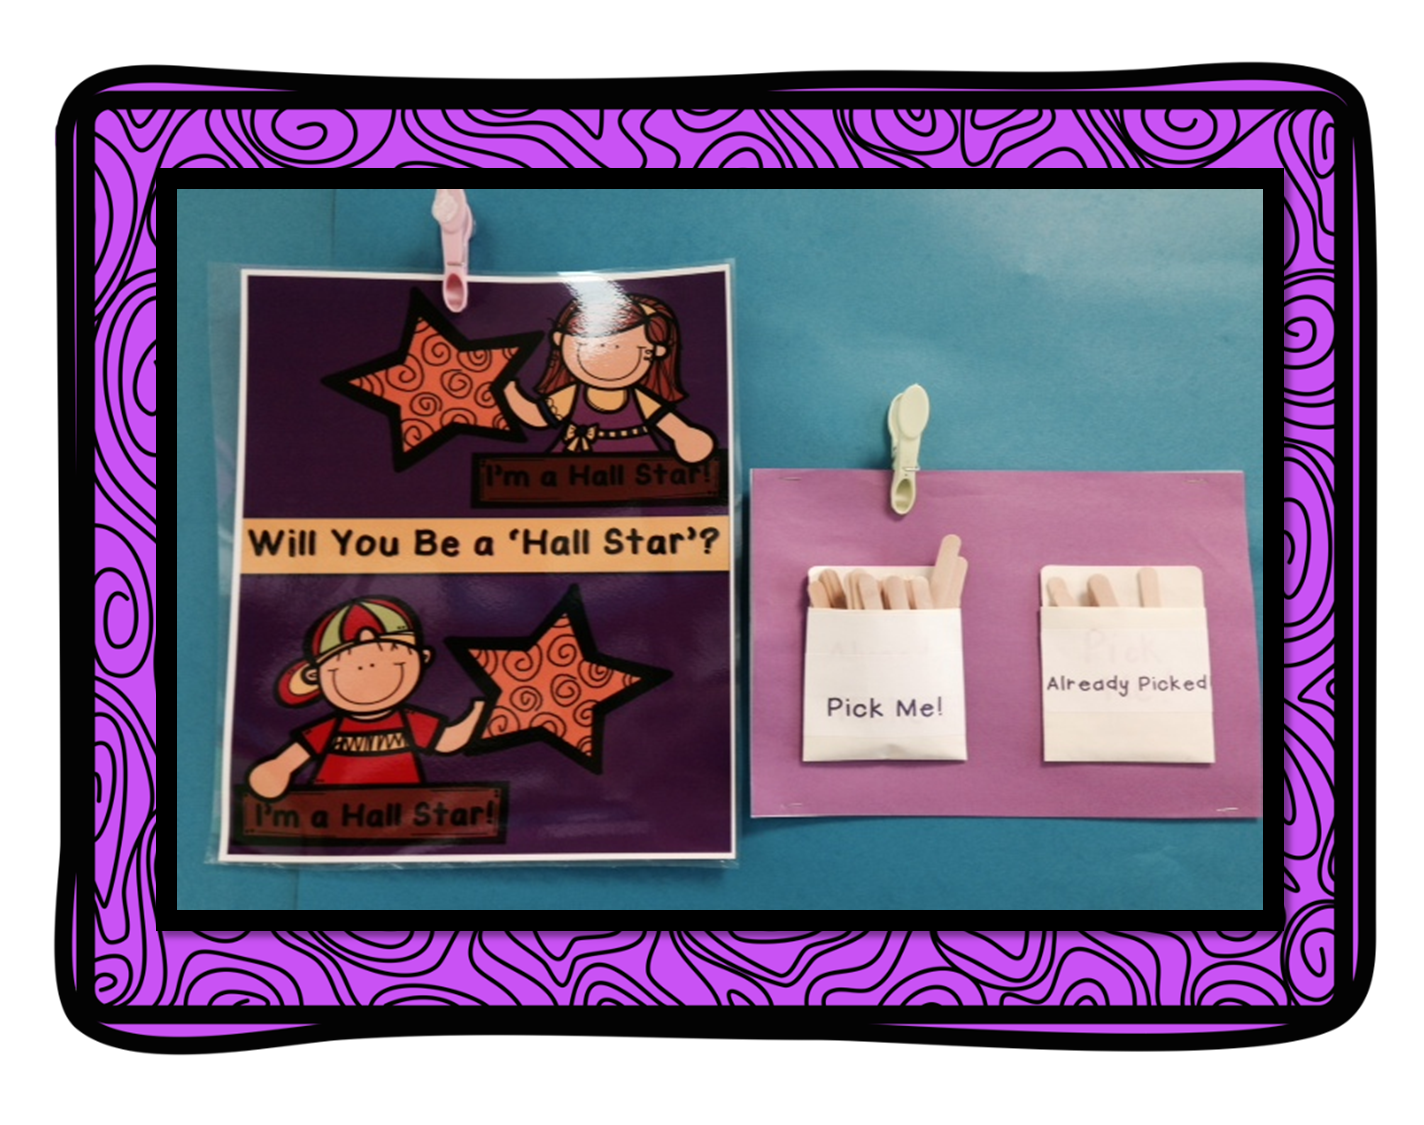 http://www.teacherspayteachers.com/Product/Hall-Stars-A-Behavior-Management-System-1387222